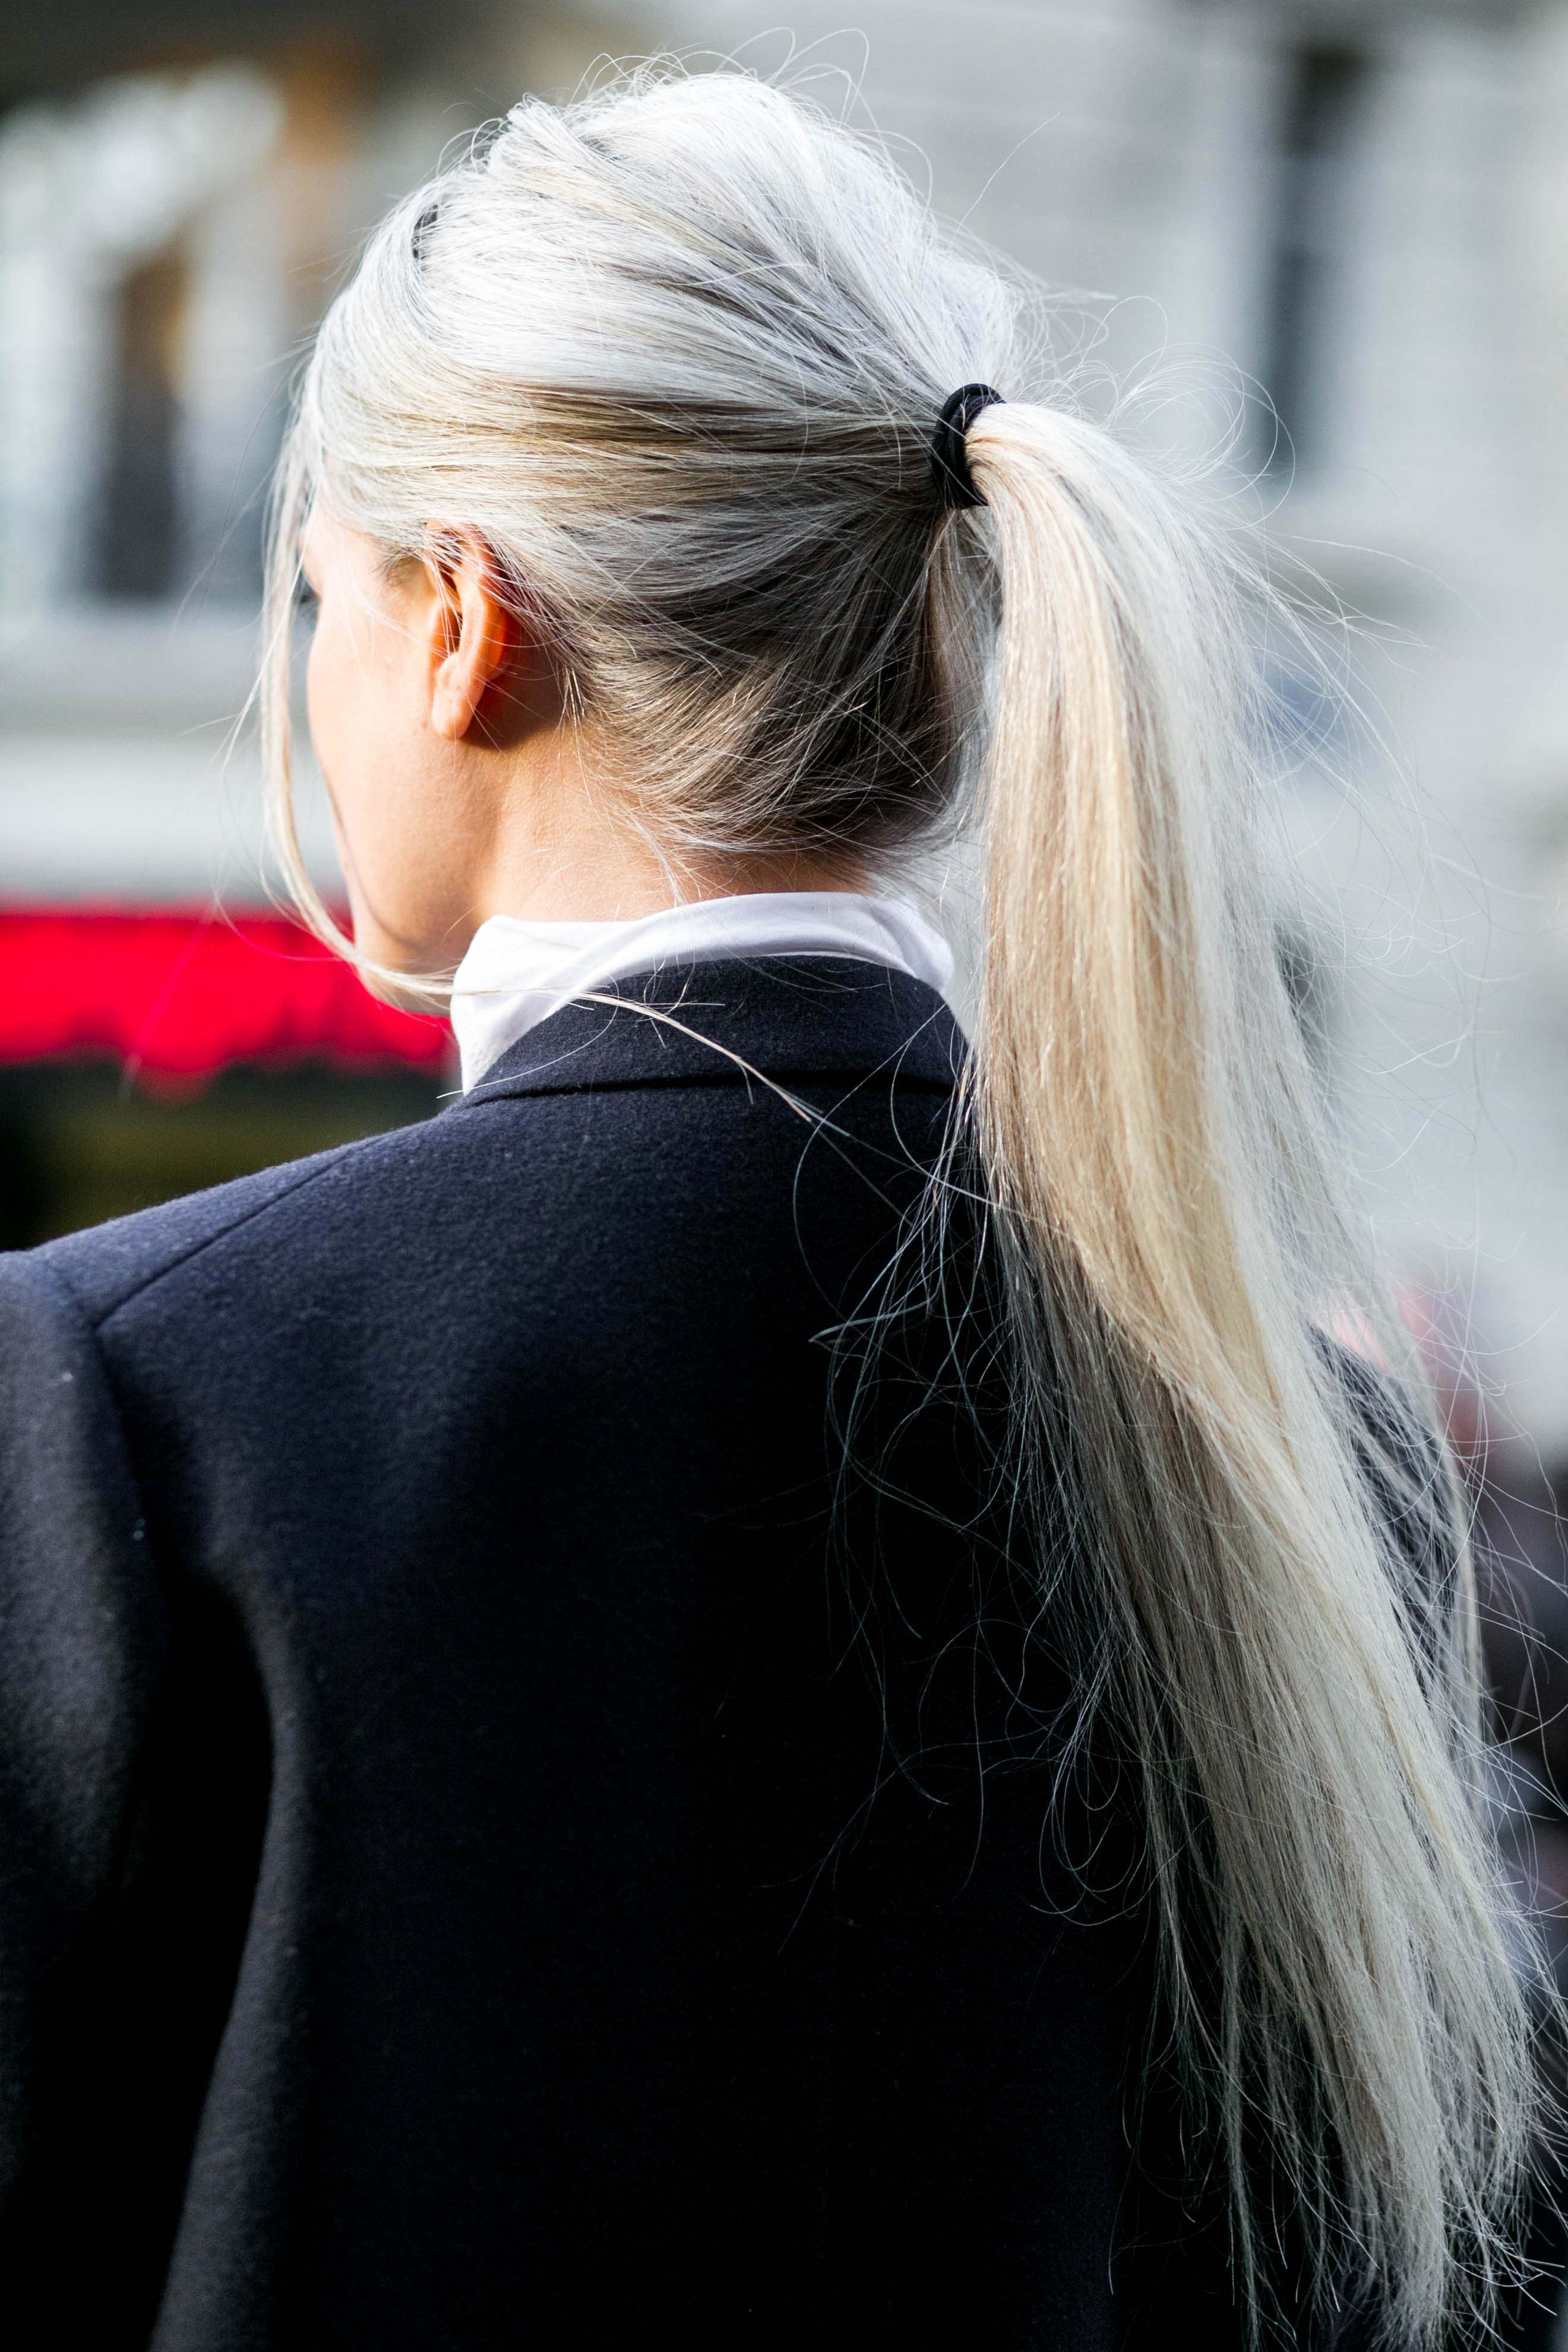 Woman with grey hair long ponytail